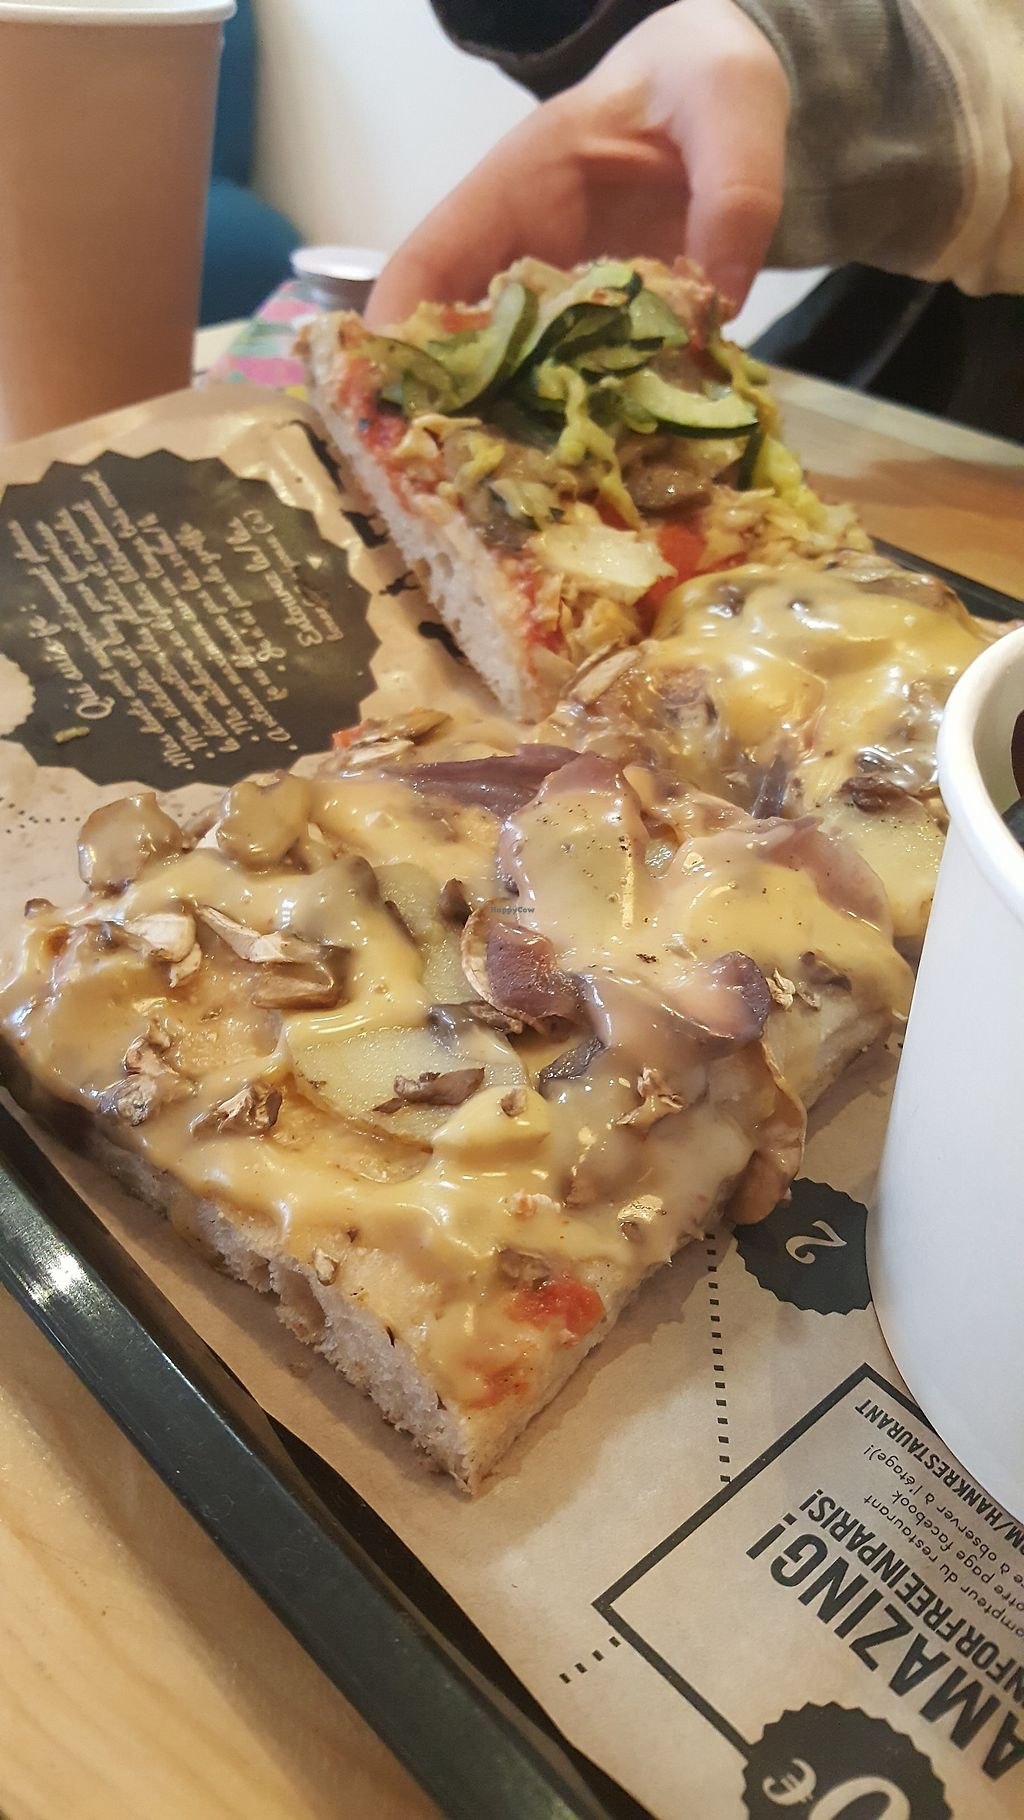 """Photo of Hank Vegan Pizza  by <a href=""""/members/profile/ThomasTieyre"""">ThomasTieyre</a> <br/>Pizza """"Montagnarde"""" : pommes de terre, oignons et fromage vegan fondant <br/> May 13, 2018  - <a href='/contact/abuse/image/79001/399146'>Report</a>"""